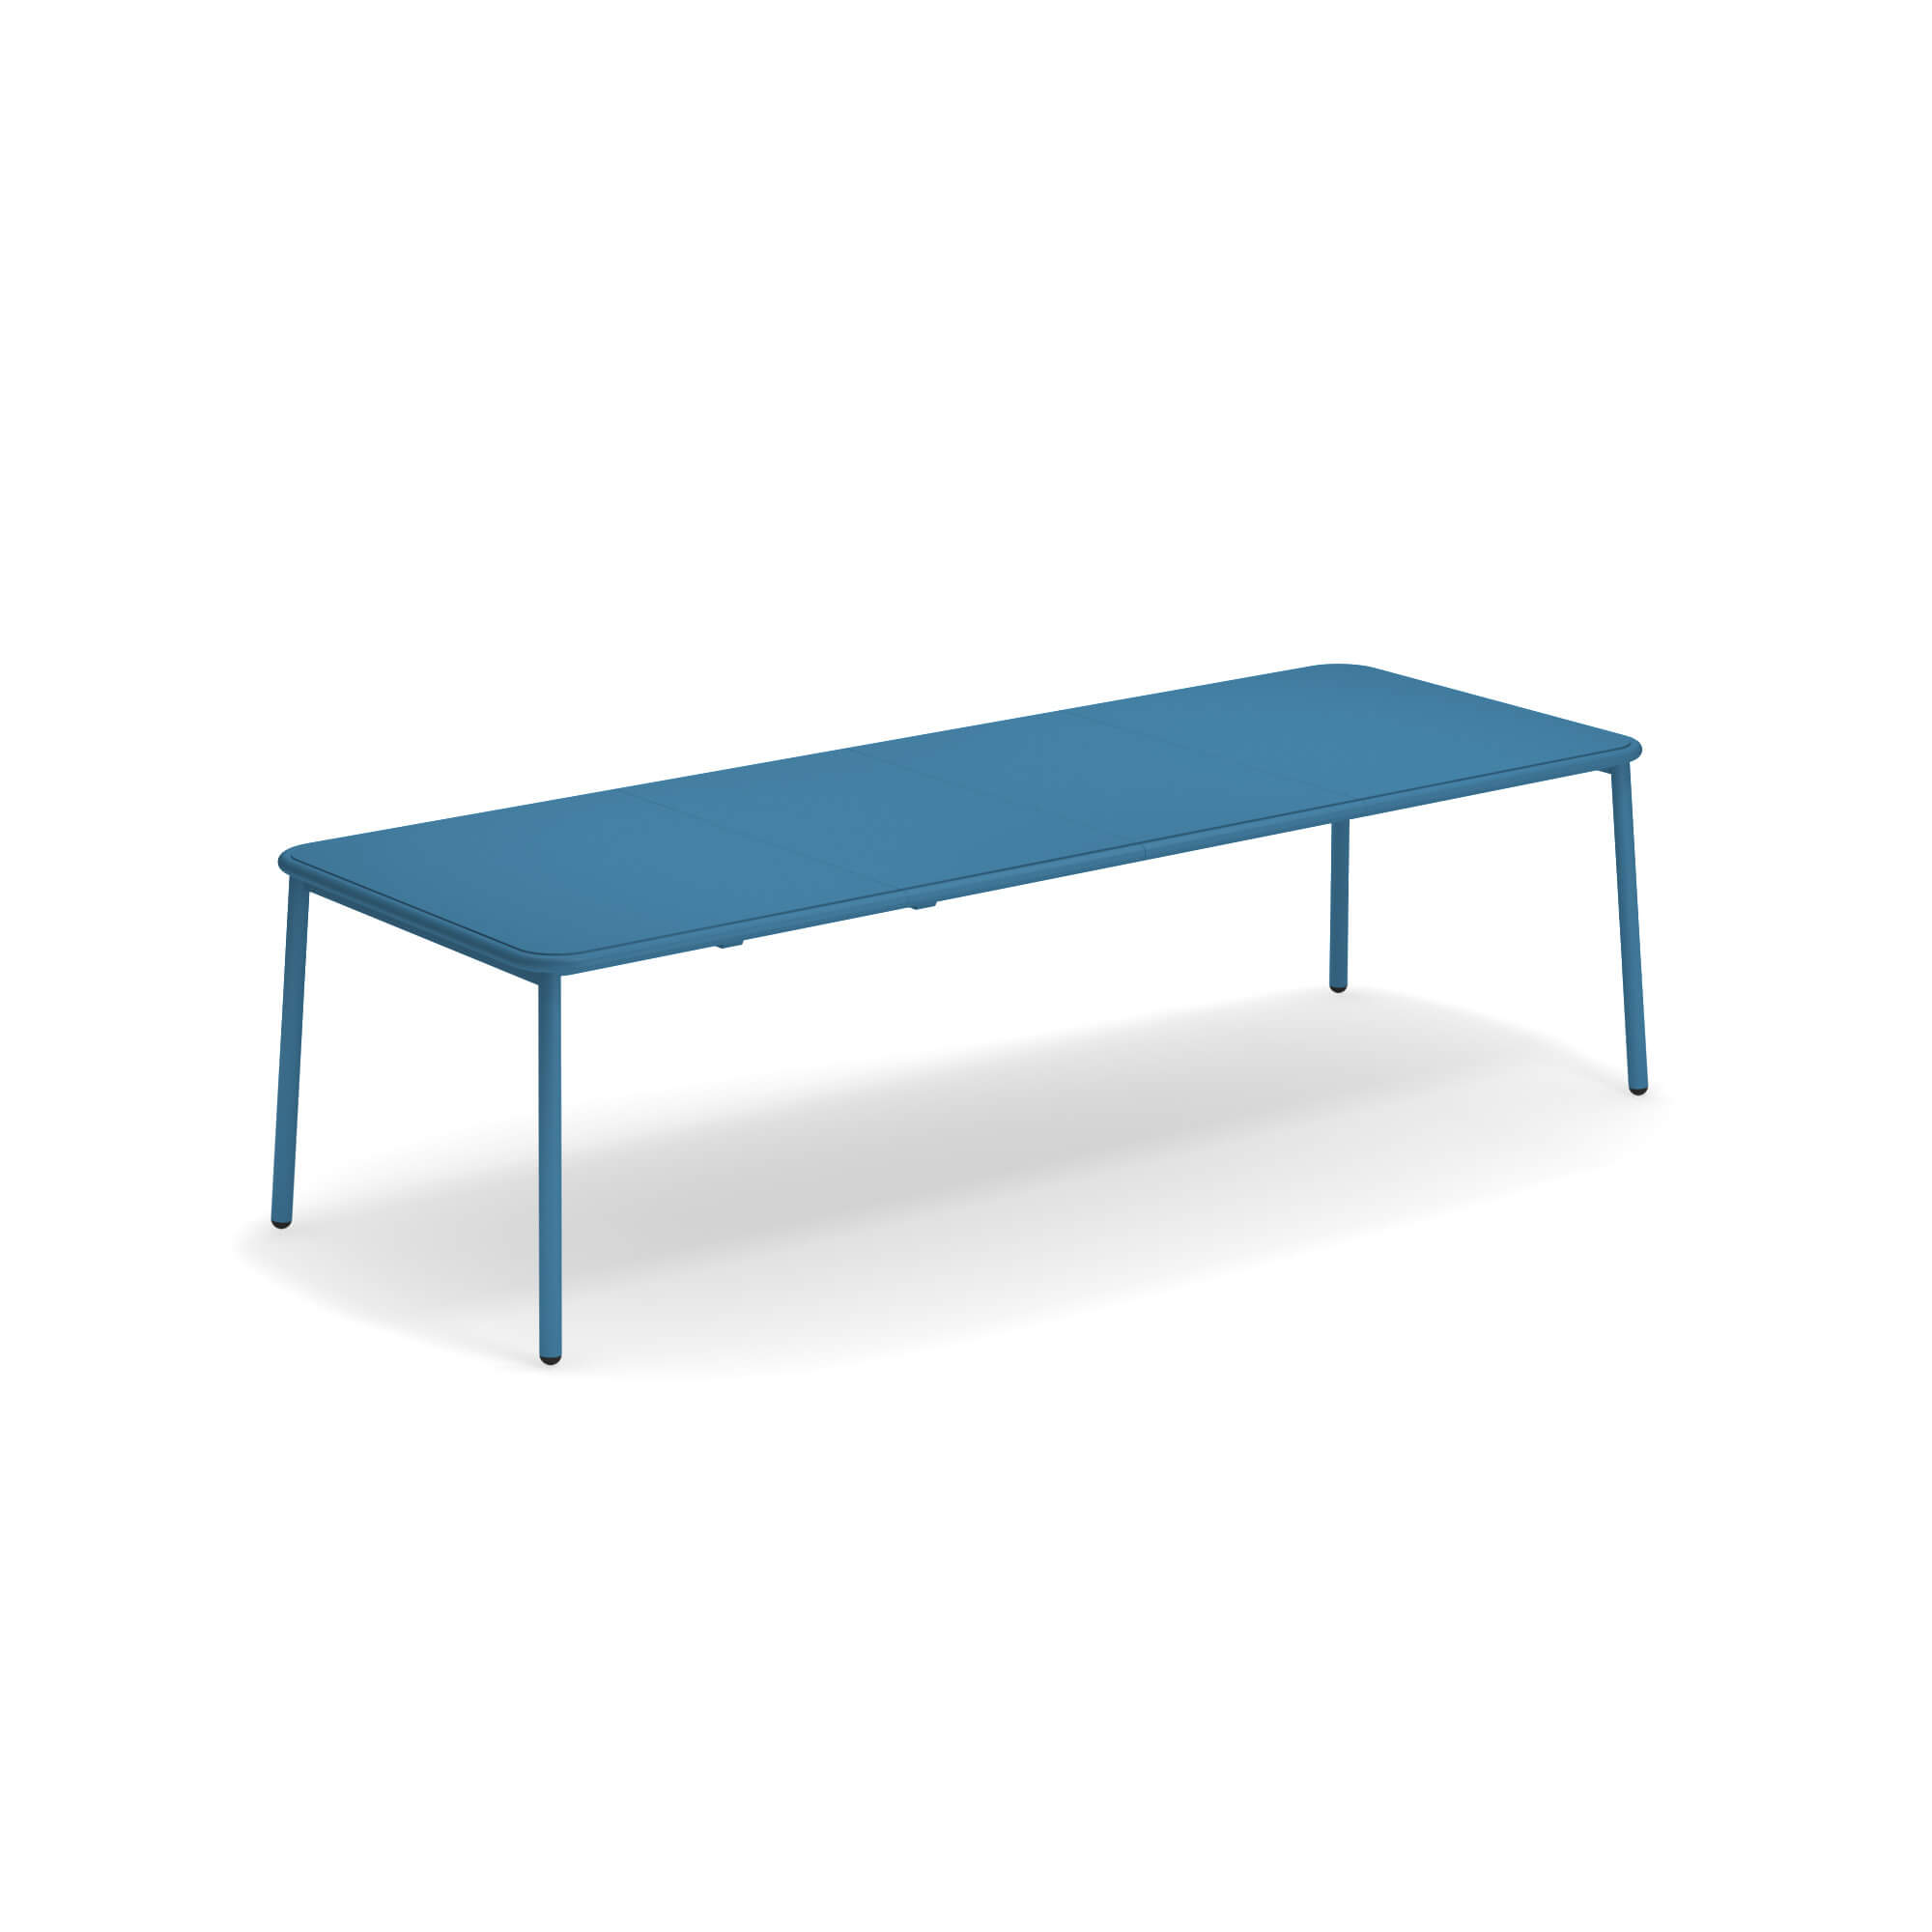 Home•tables•extensible table with aluminum top  